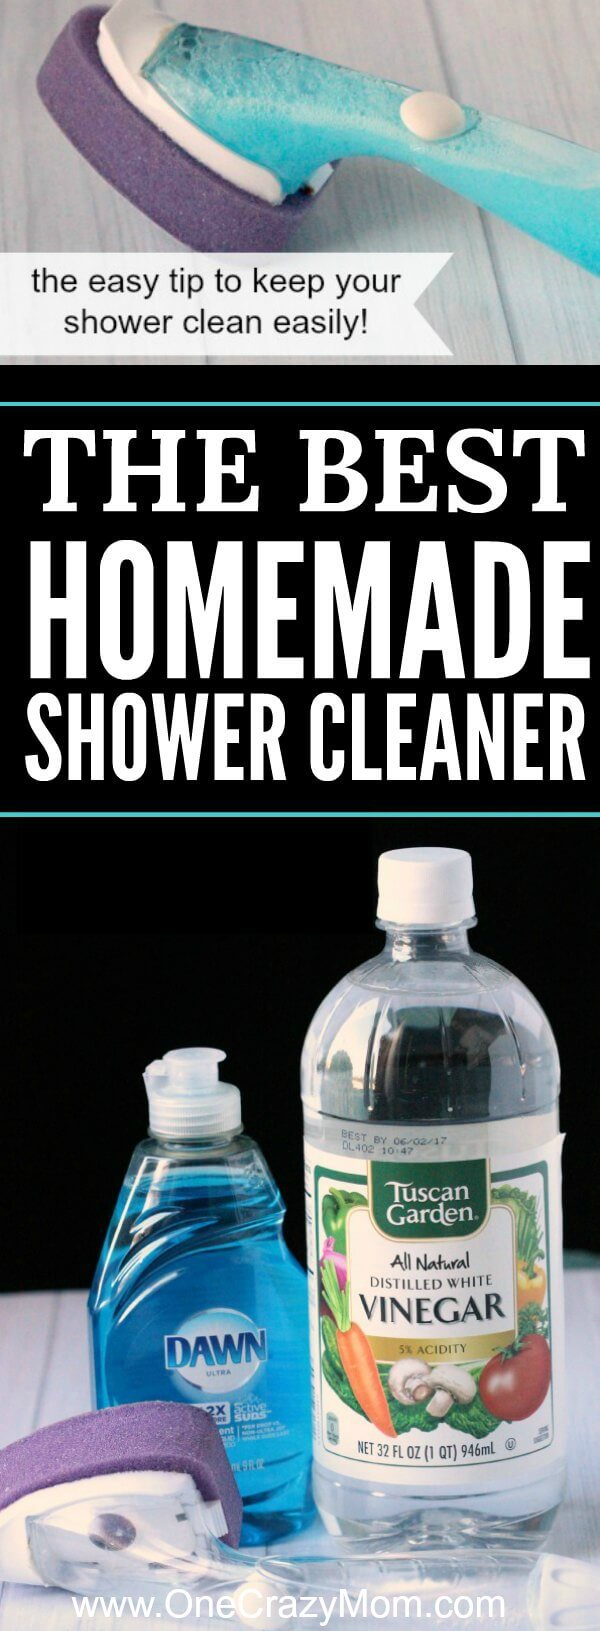 Best homemade shower cleaner best shower cleaner for Best cleaner for bathroom